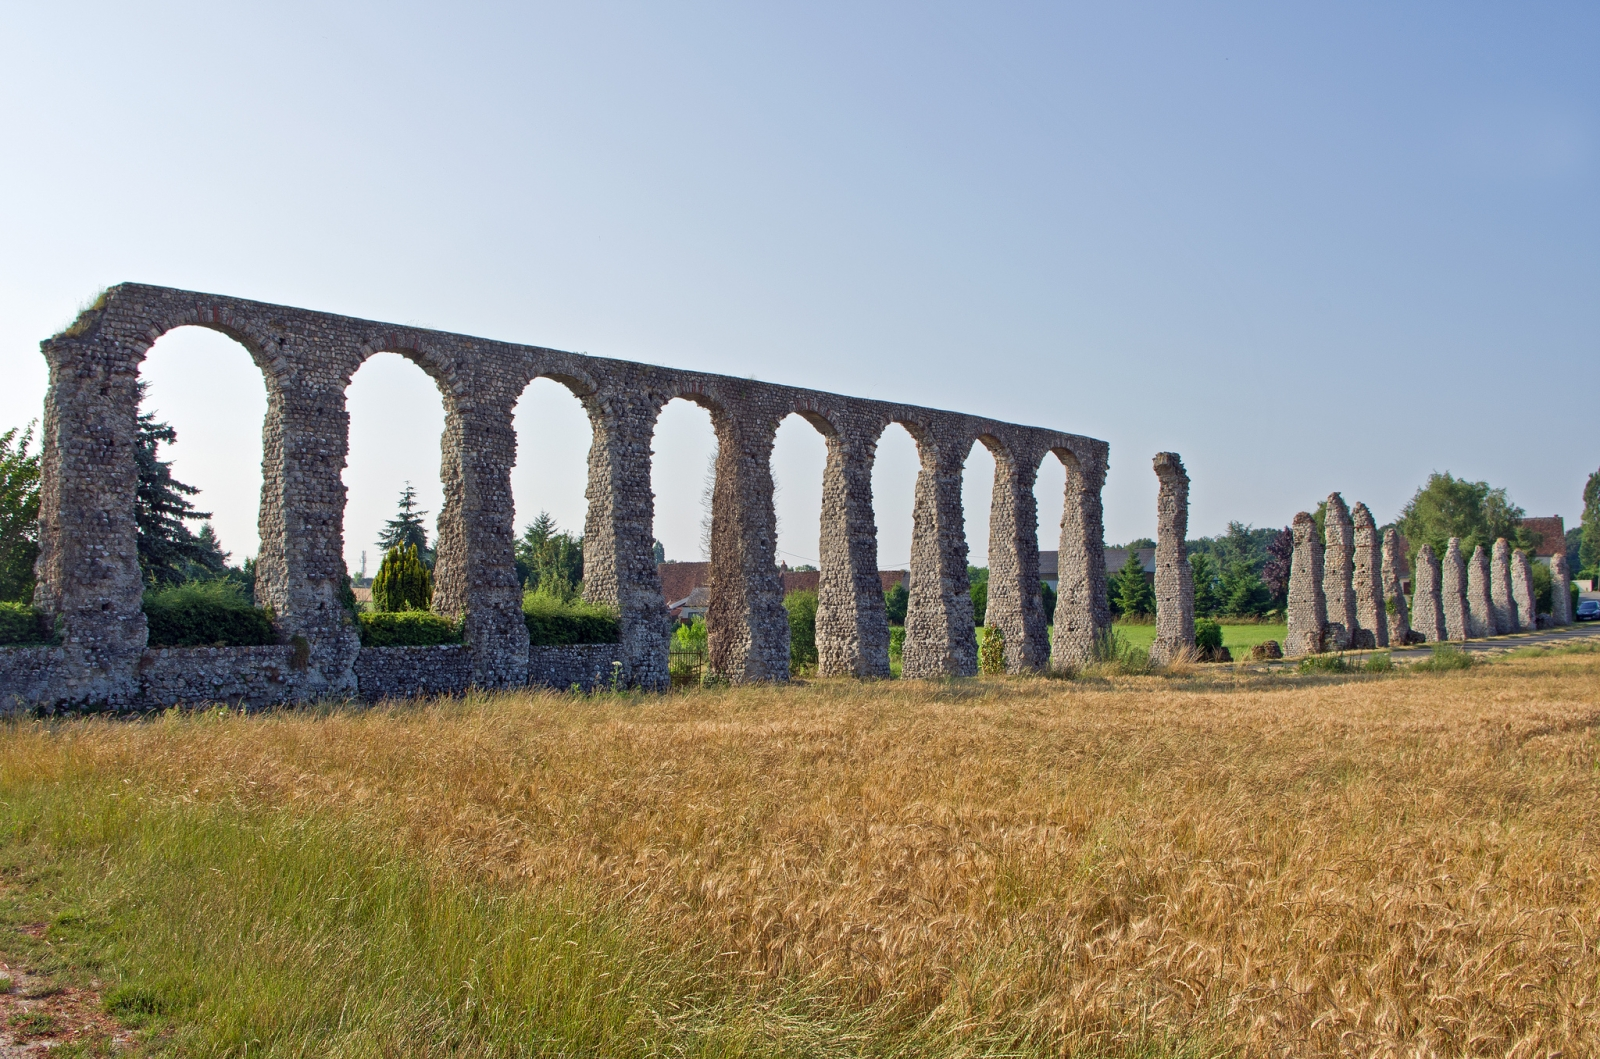 While the Romans' agricultural and water irrigation practices worked well, they might have been a factor in the Empire's downfall